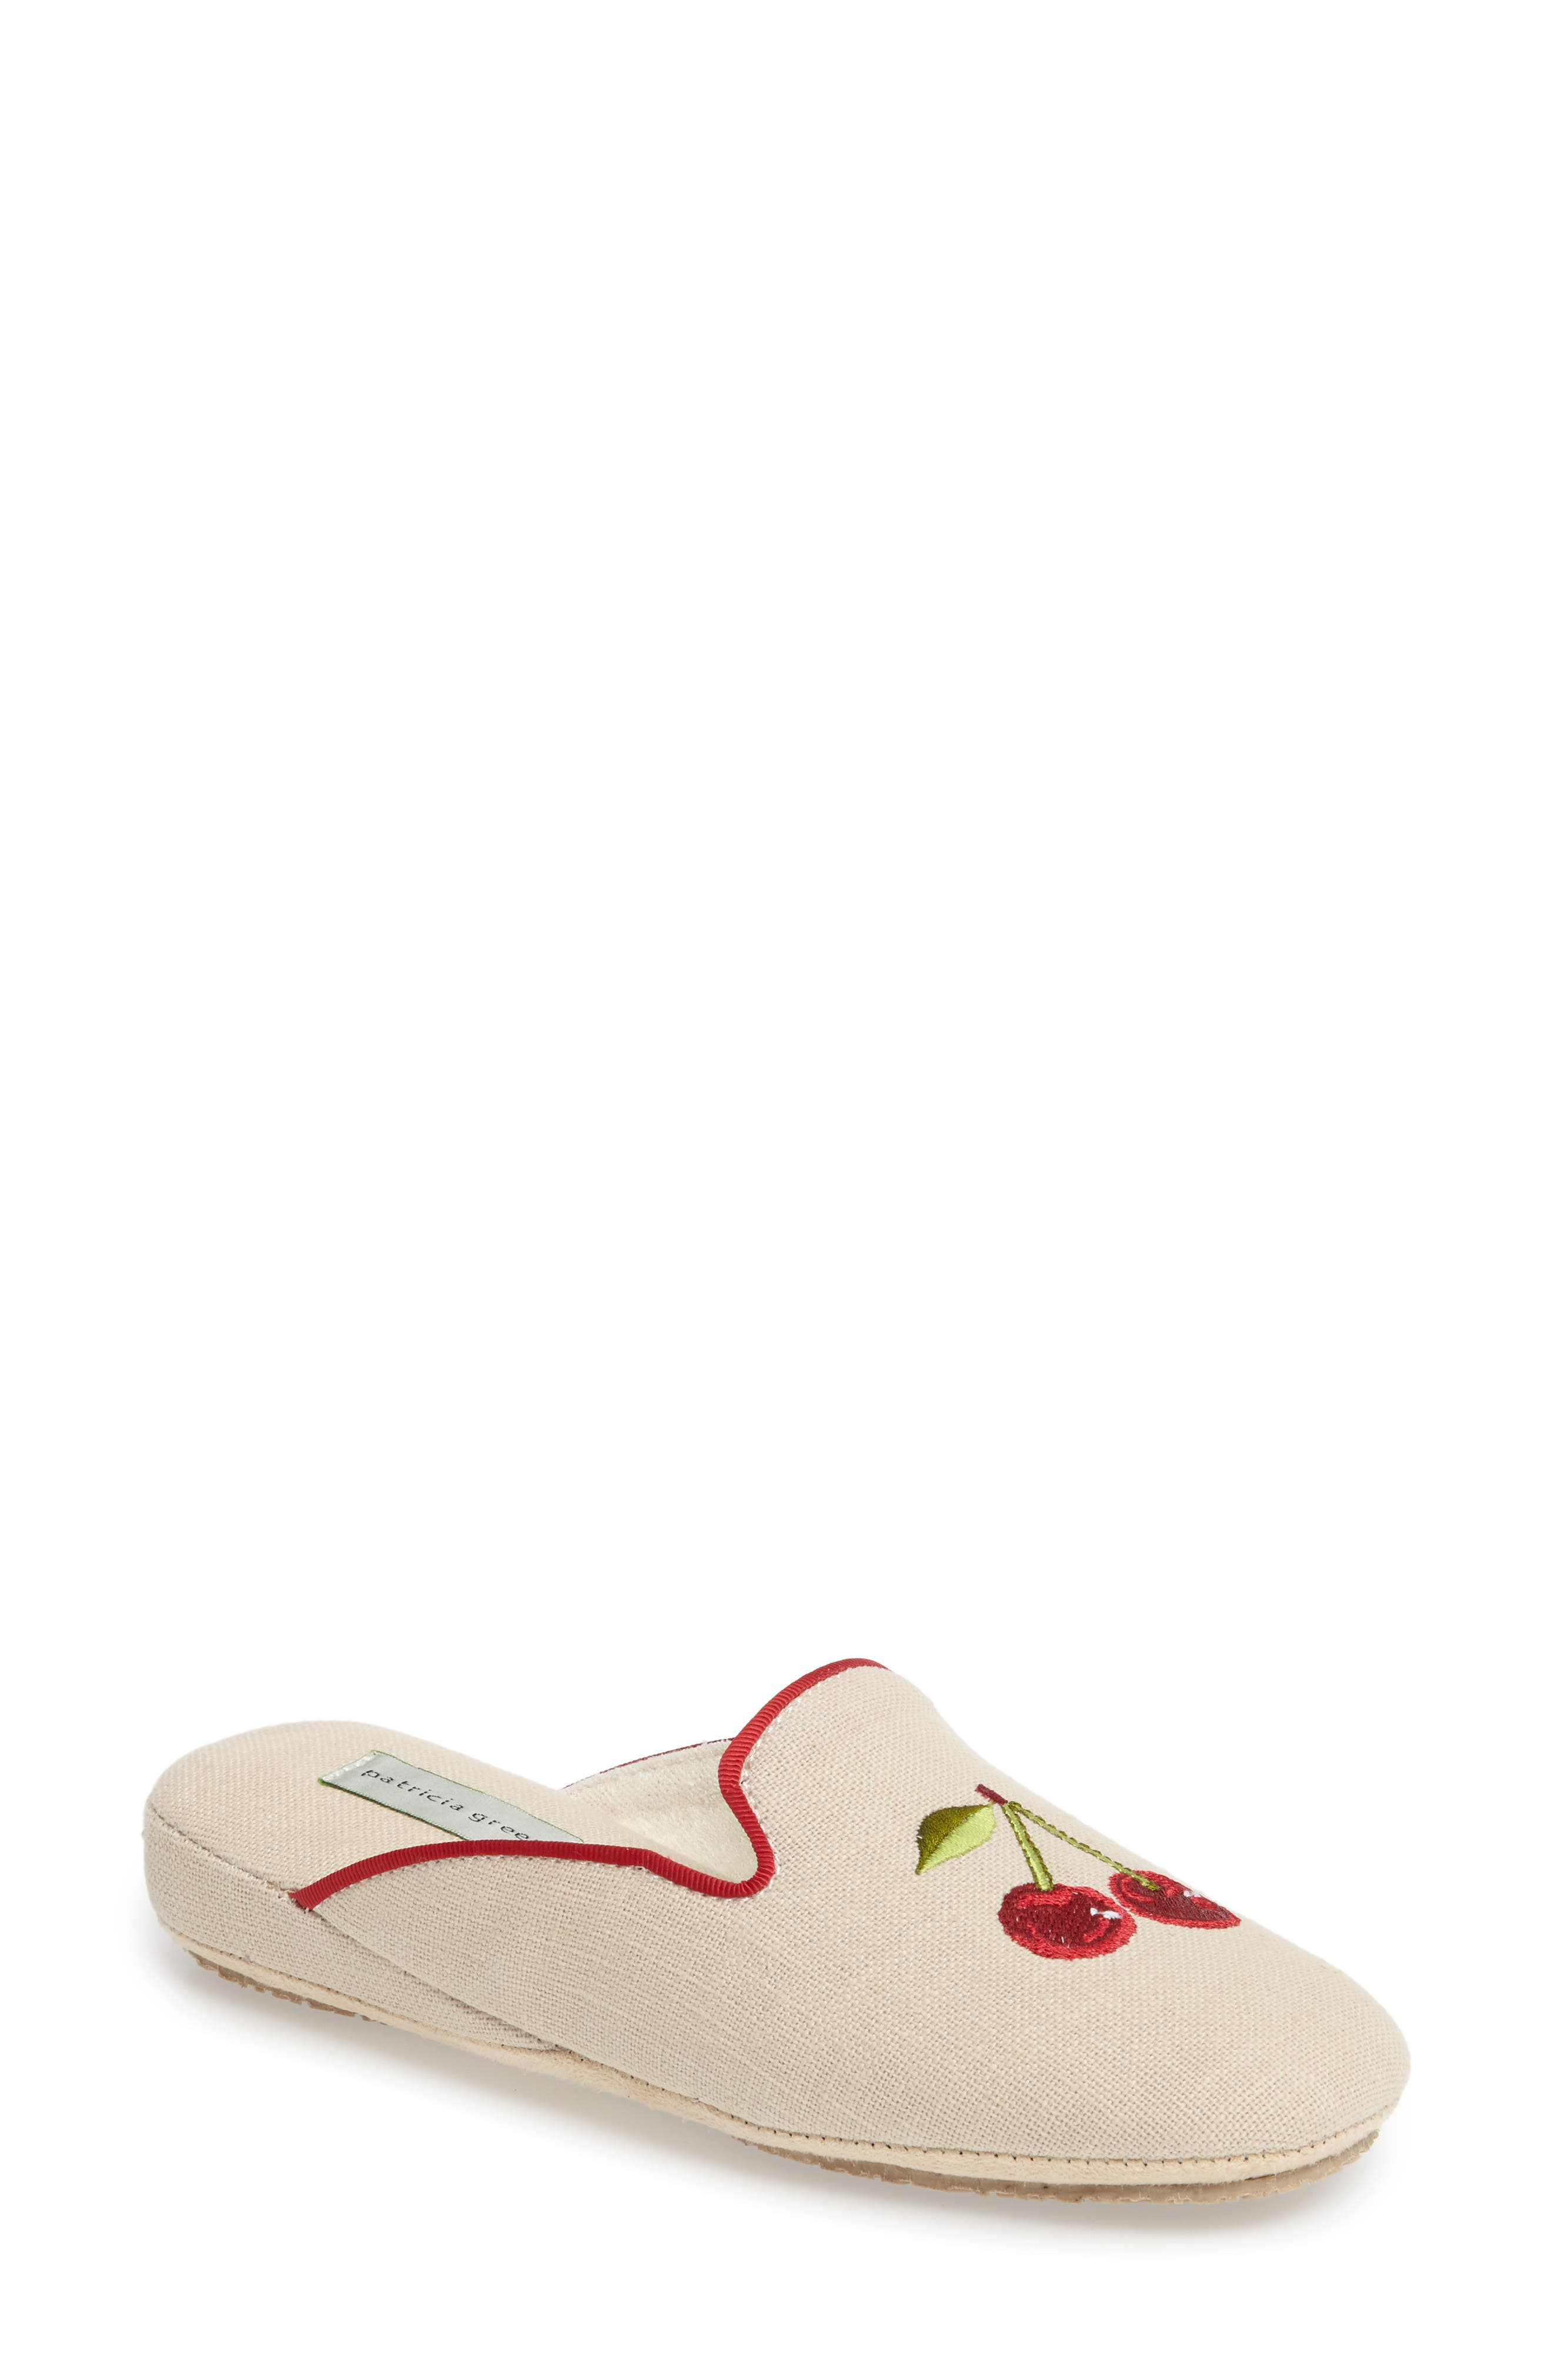 Cherries Slipper,                             Main thumbnail 1, color,                             Natural Fabric